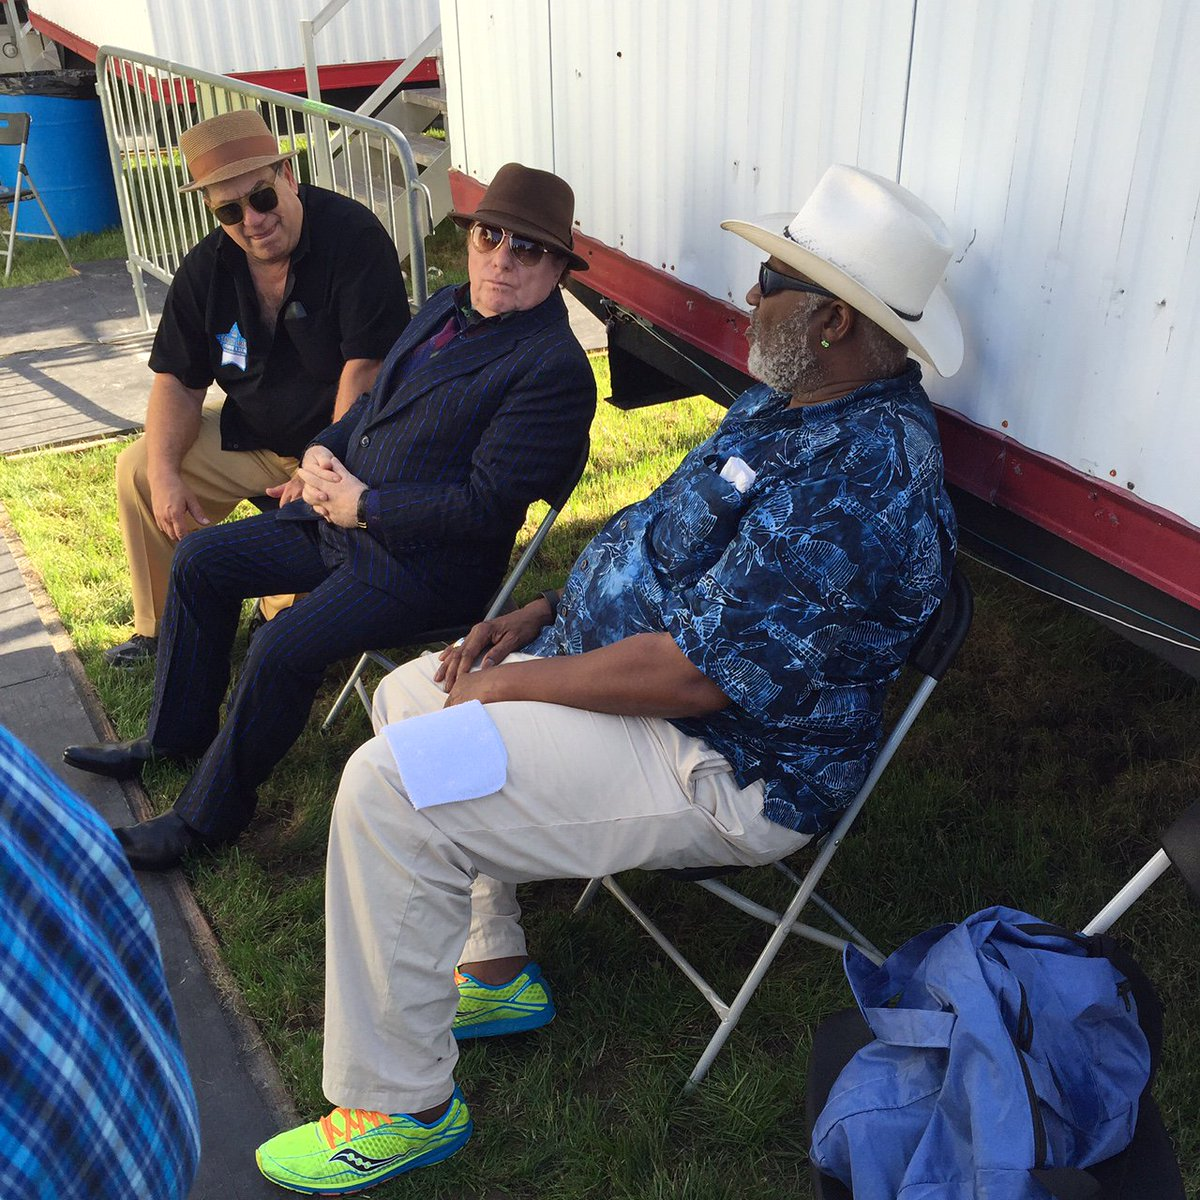 It was great to catch up and record with my friend @vanmorrison yesterday at @jazzfest. https://t.co/5mI8Wdrtdu